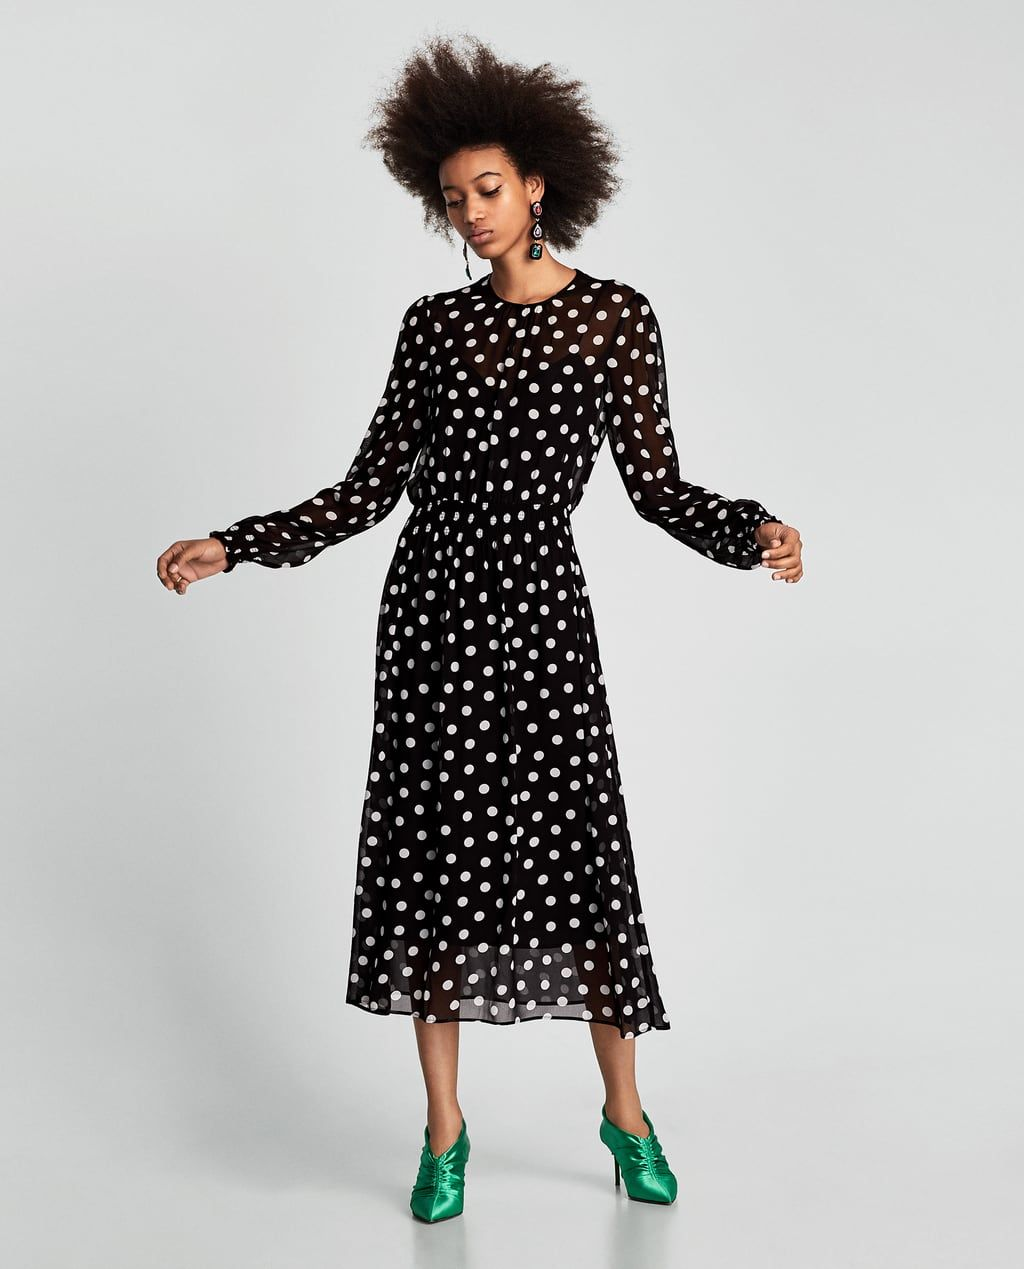 48e7b372a5a01 POLKA DOT DRESS-Midi-DRESSES-WOMAN | ZARA United States | dresses ...